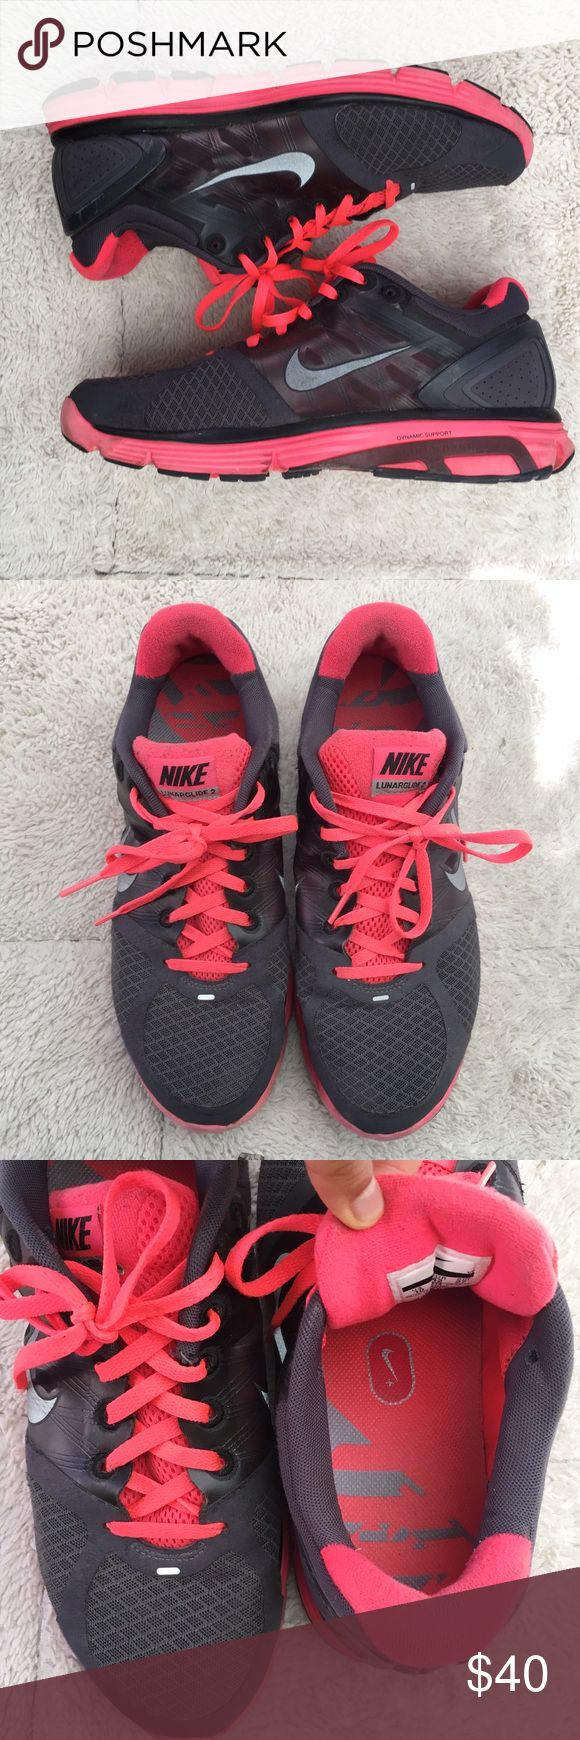 Nike Lunarglide 2 Preloved but in great condition regardless! Make an offer! Nike Shoes Sneakers